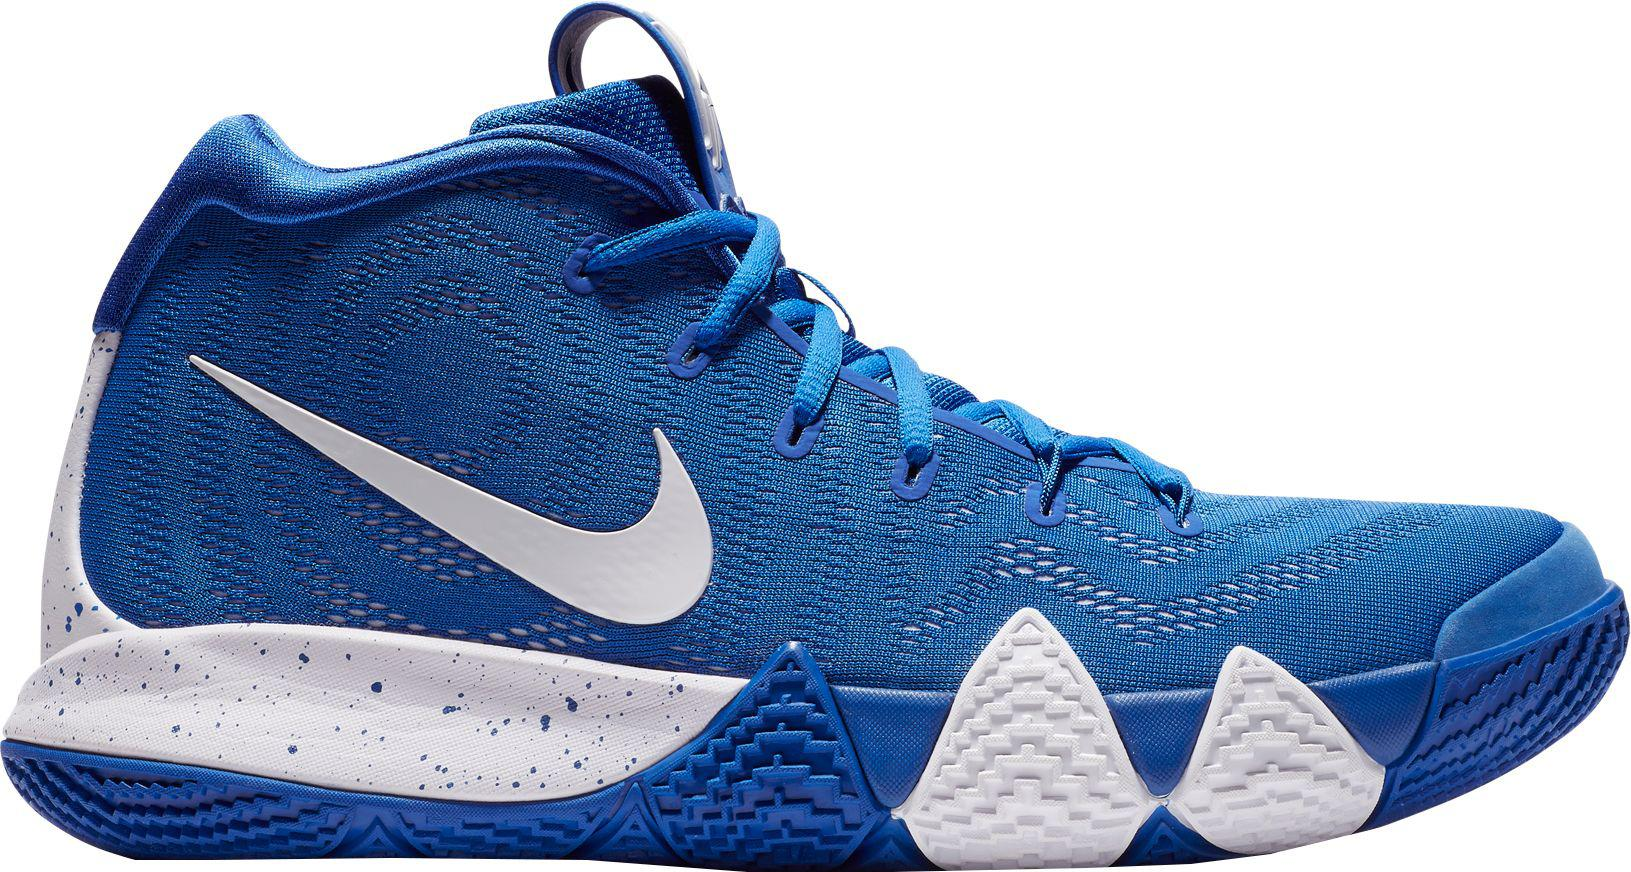 8f8bffb7764 Nike Kyrie 4 Tb Basketball Shoes in Blue for Men - Lyst